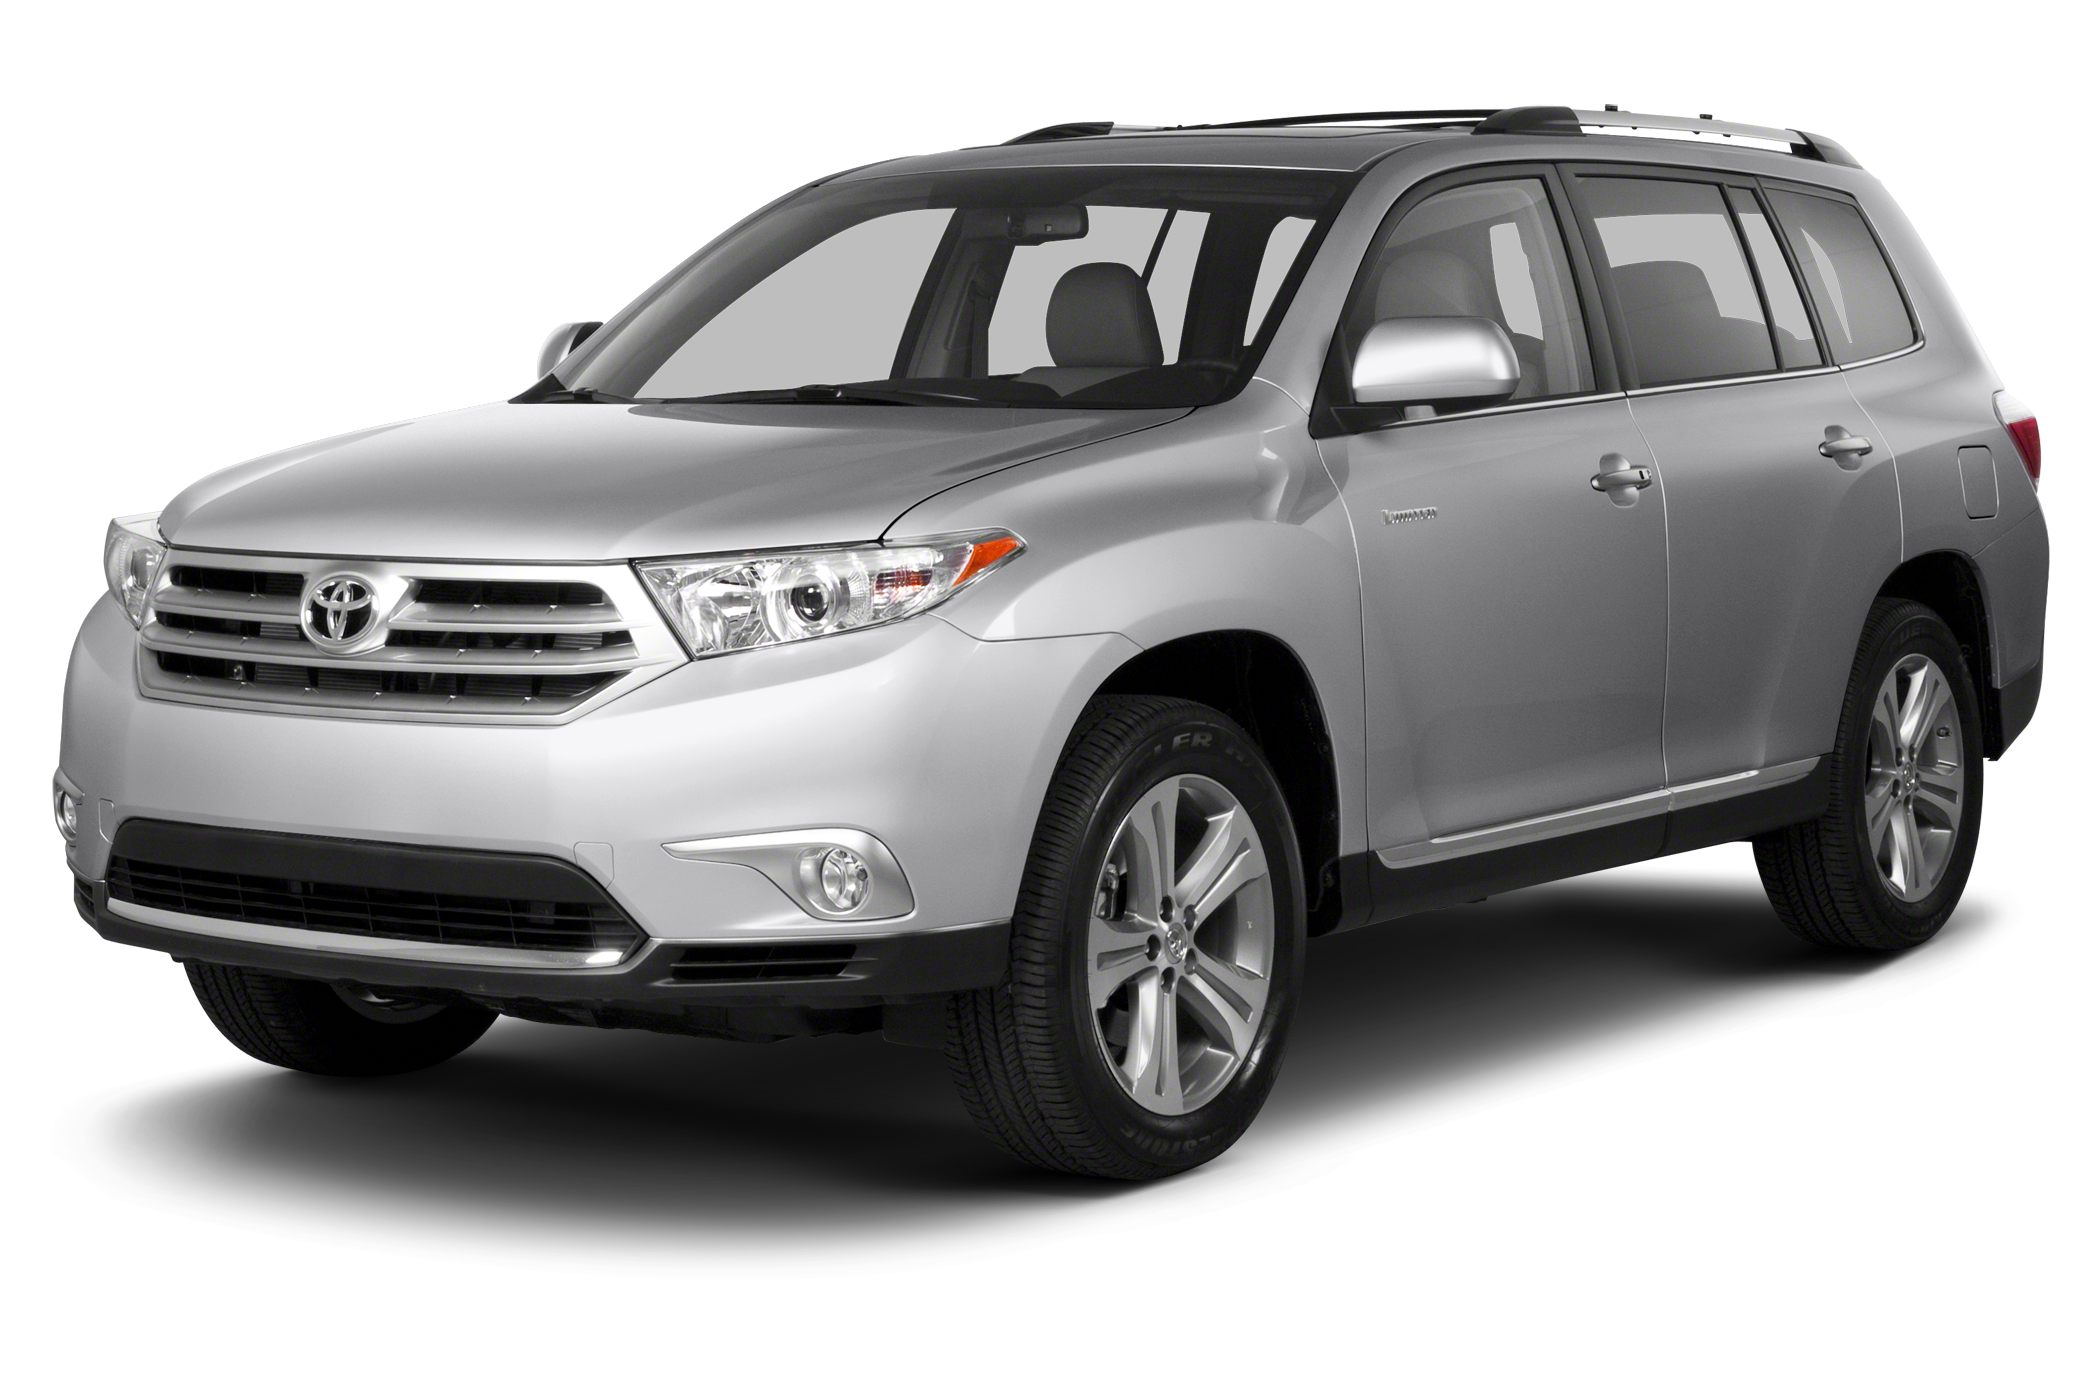 2017 Toyota Highlander Pricing And Specs